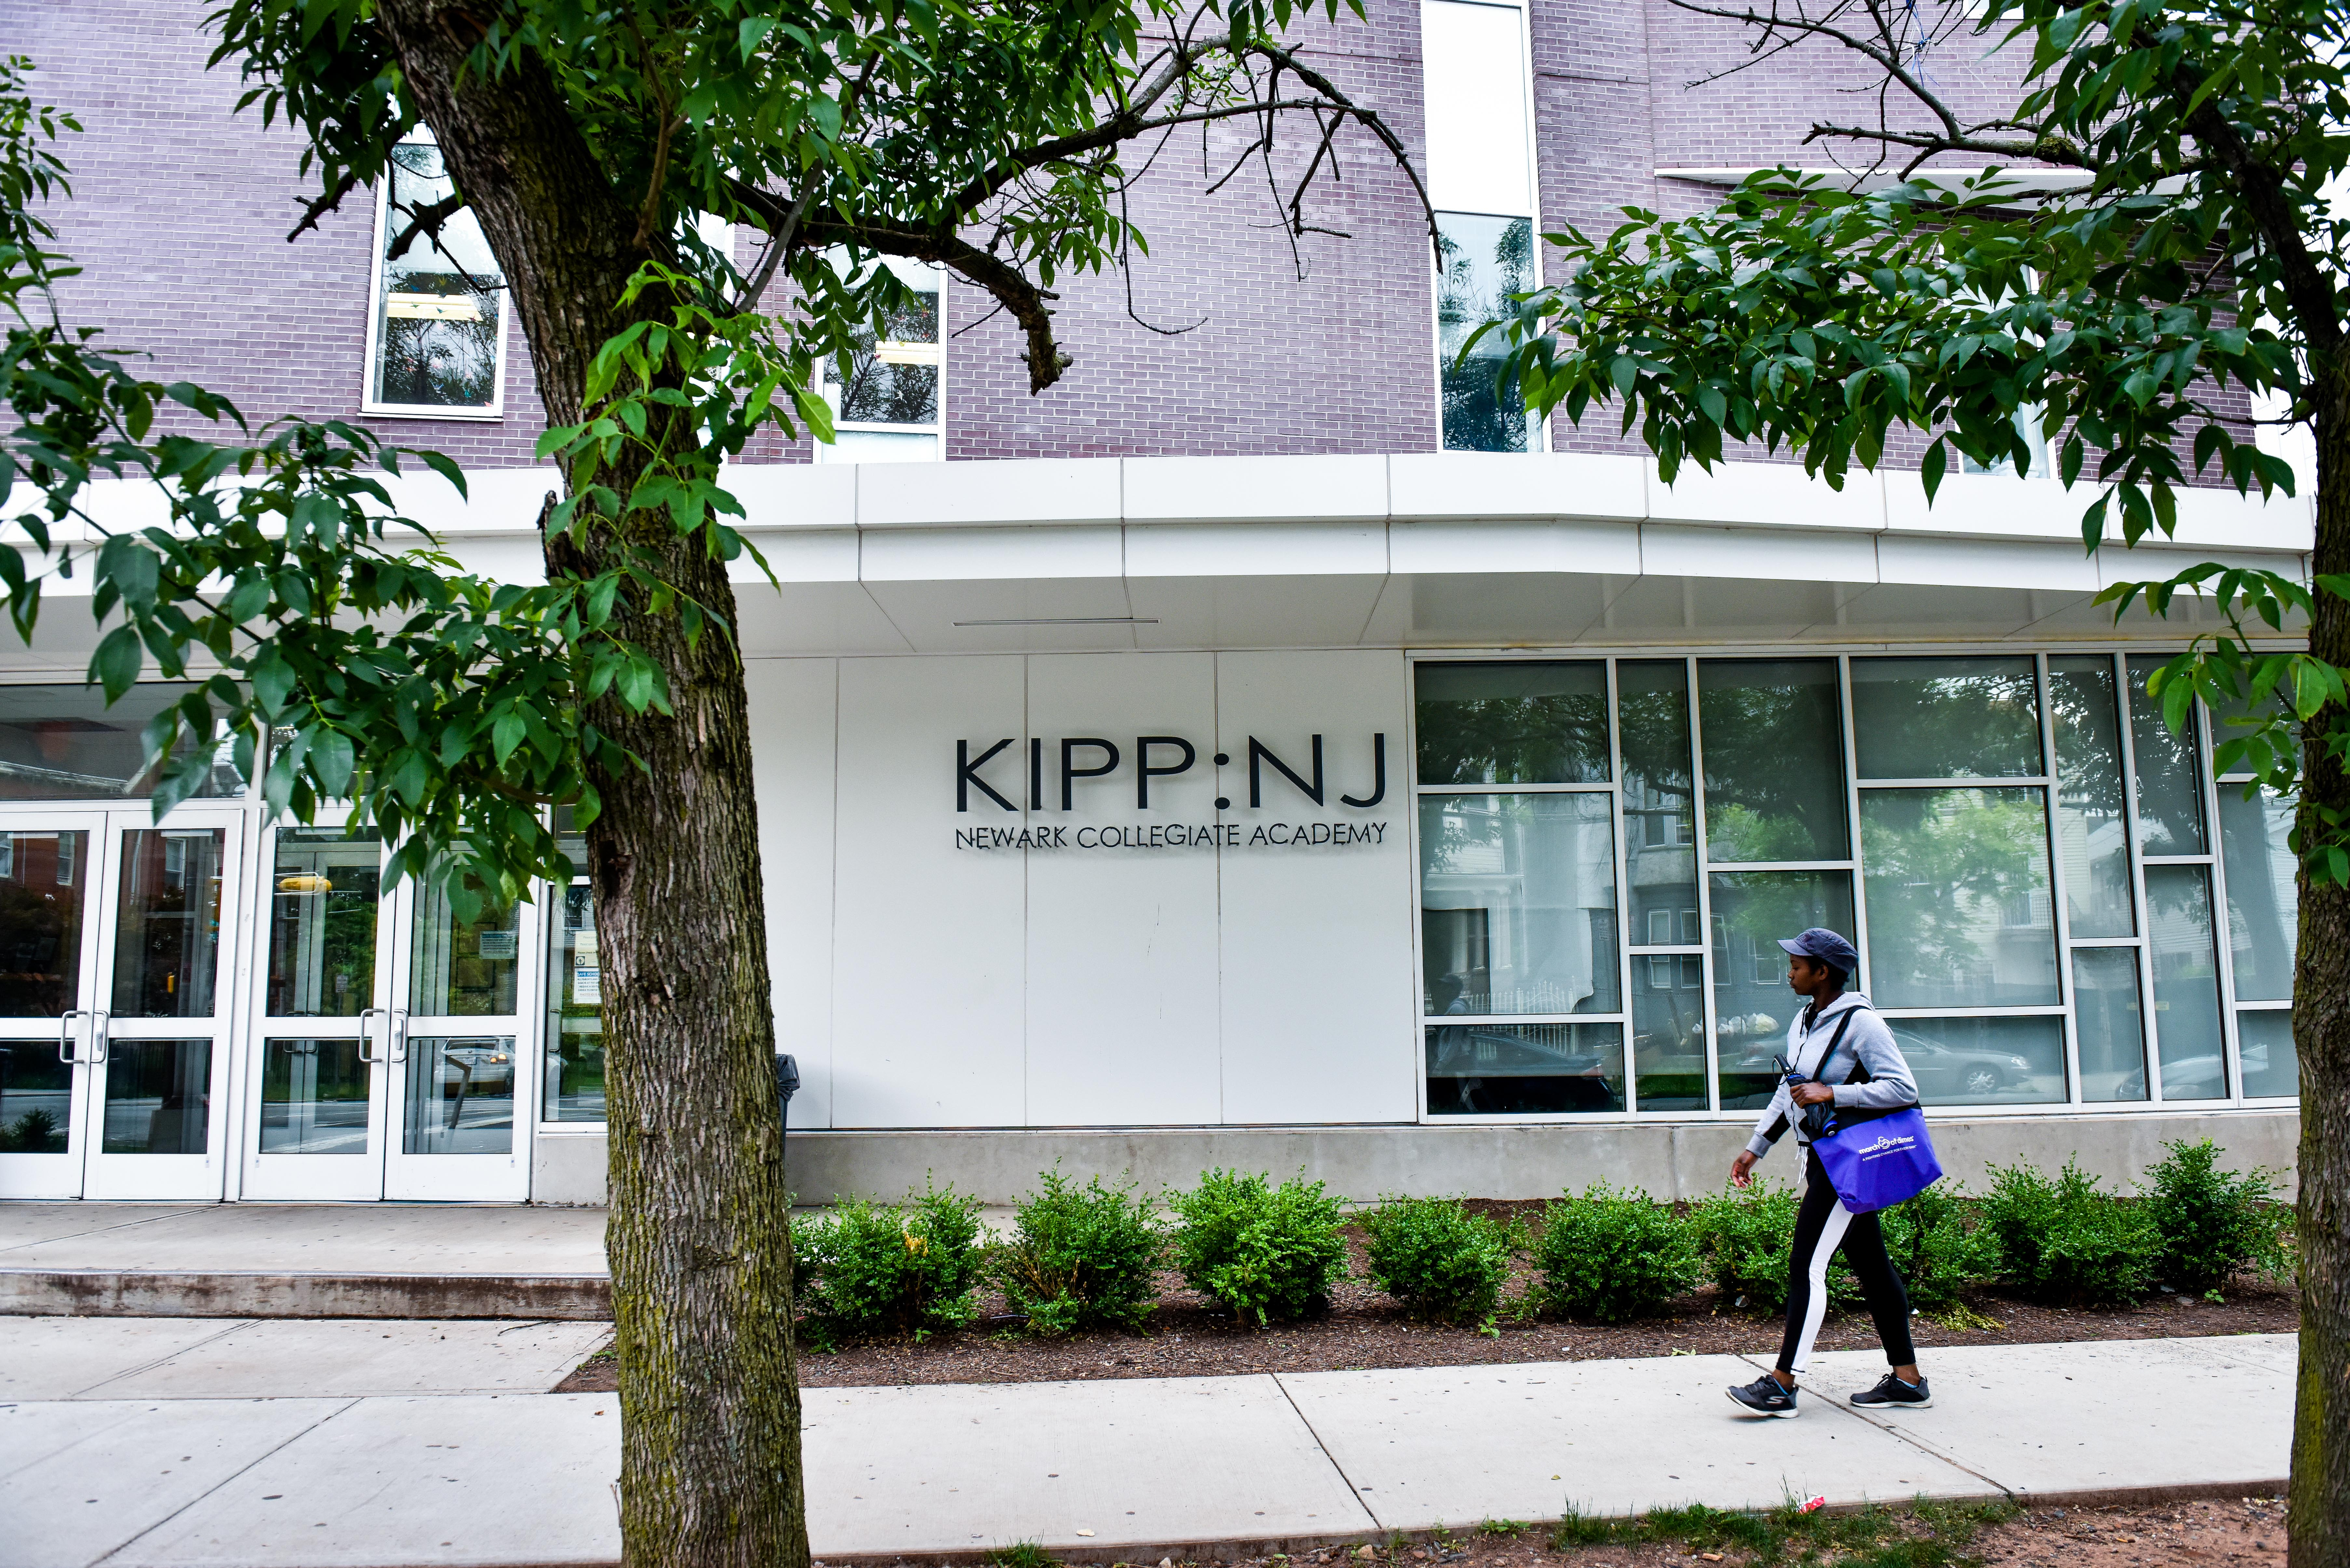 A student wearing a cap and carrying a blue tote bag walks on a walkway in front of the KIPP-NJ building.